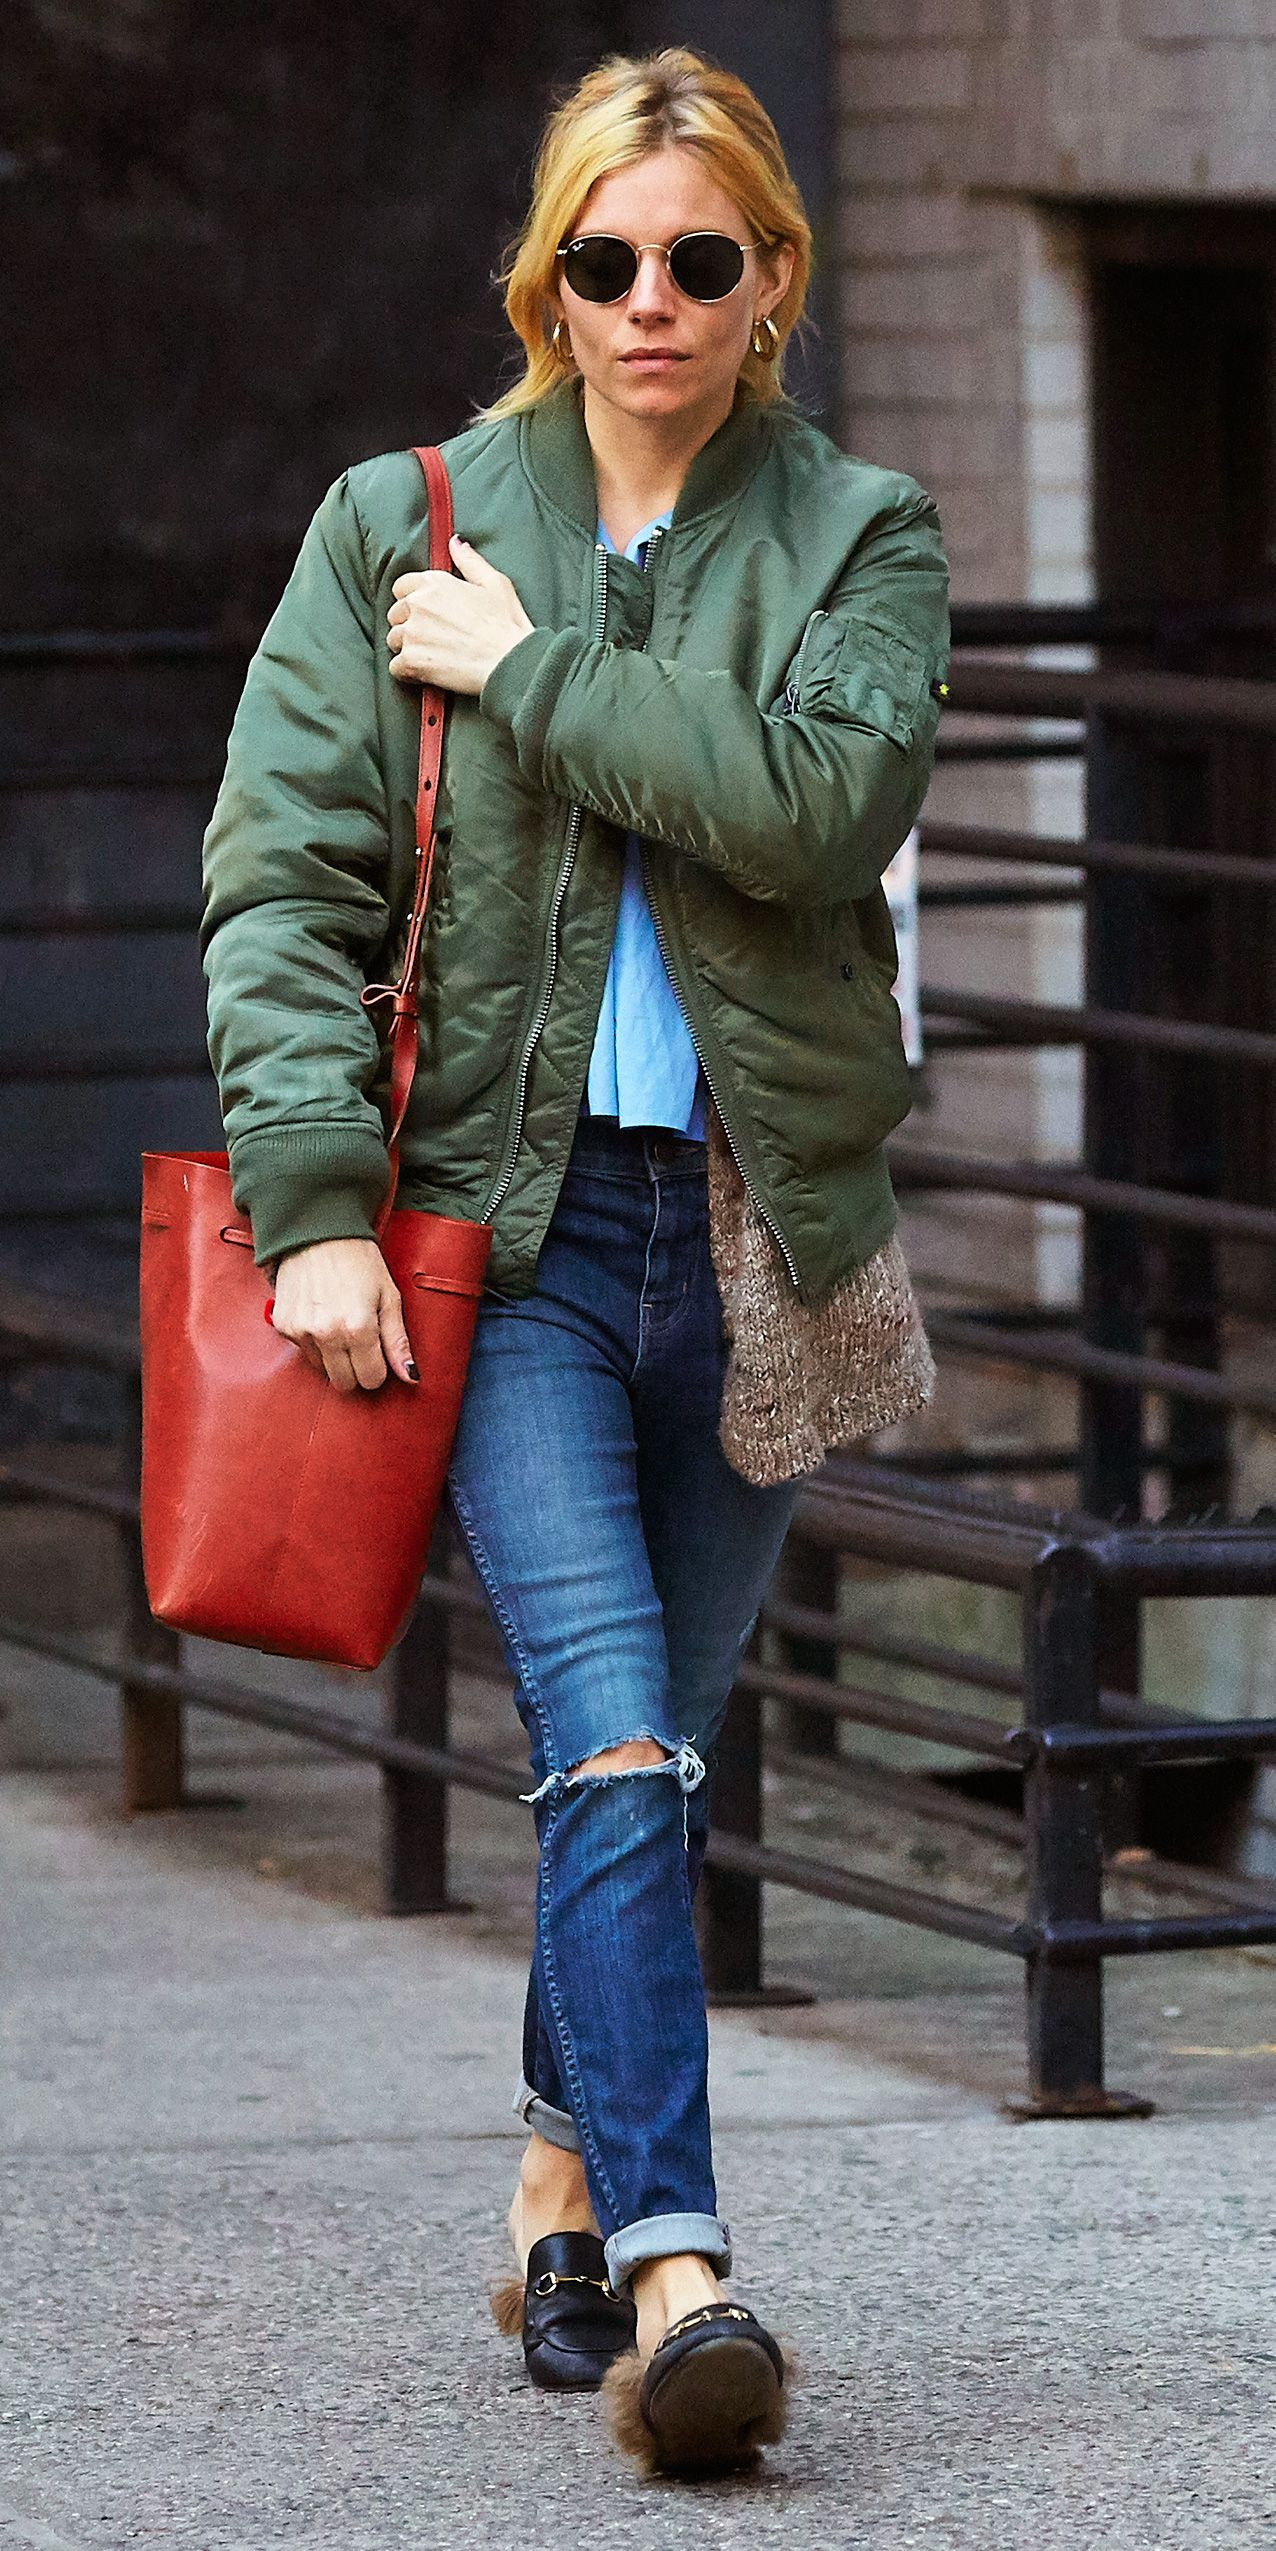 d9aa35f197f Sienna Miller wore her bomber with furry loafers and distressed jeans.  Sienna Miller Style